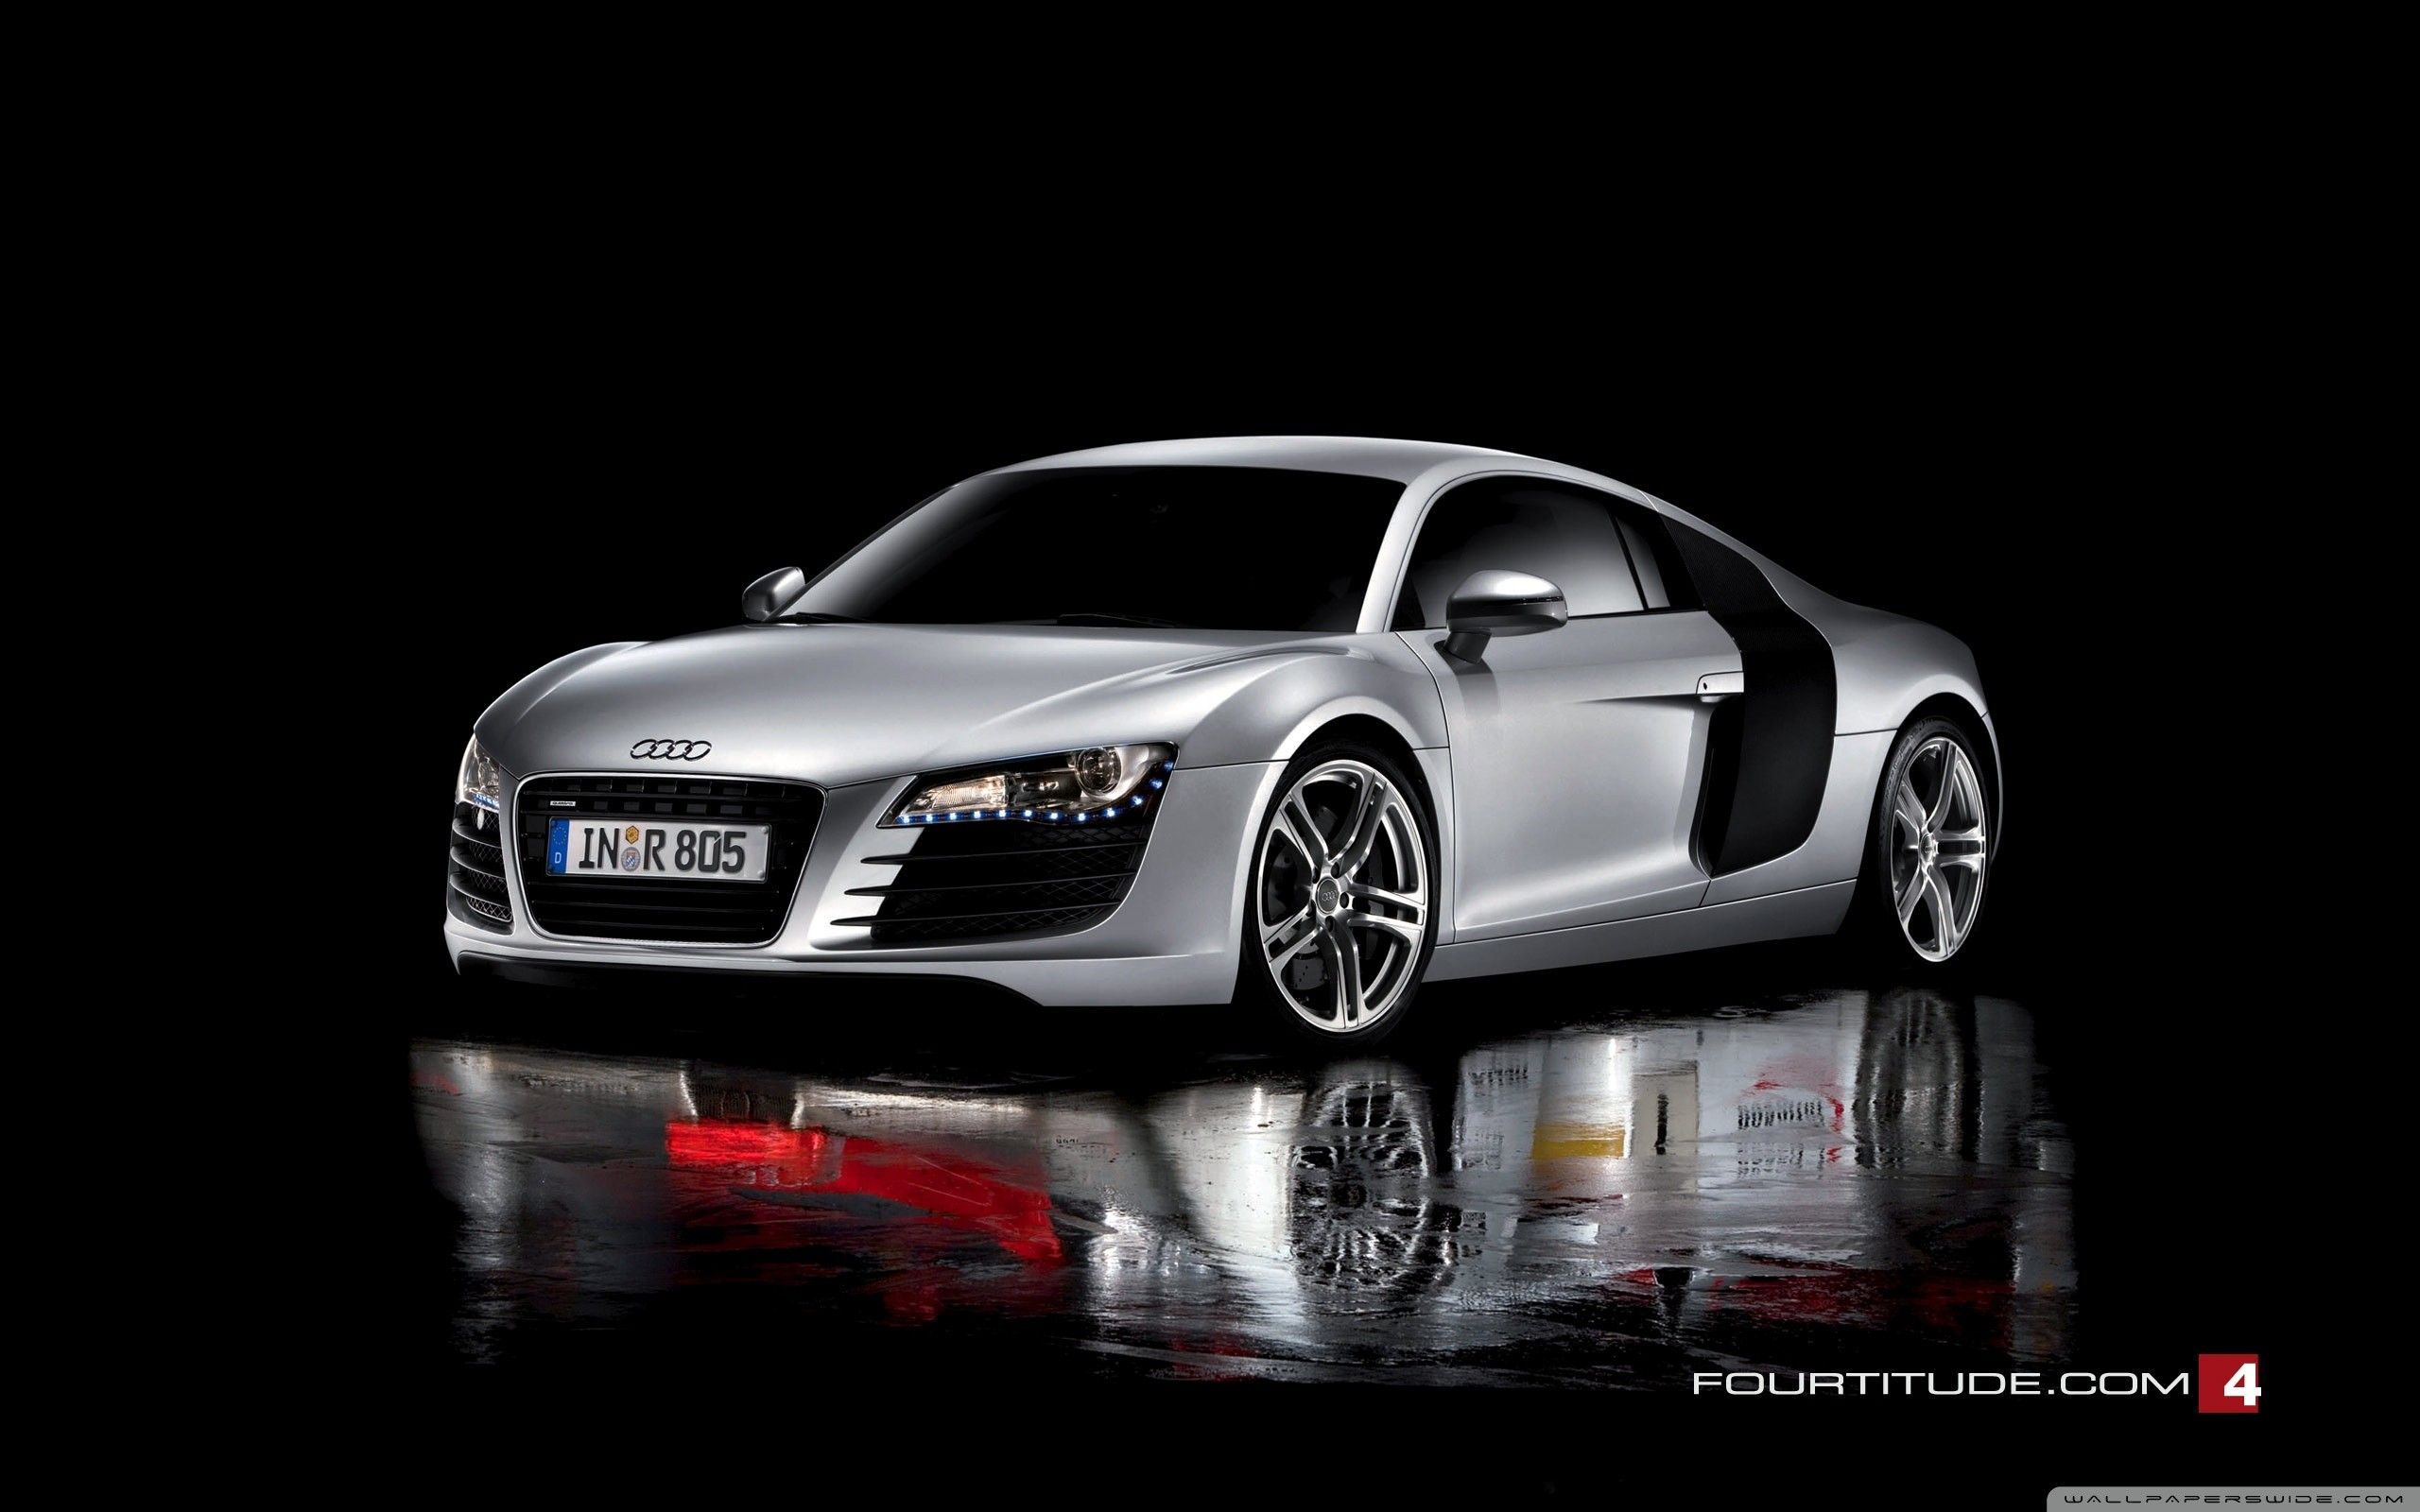 Awesome Audi A8 Wallpapers Widescreen Check More At Https